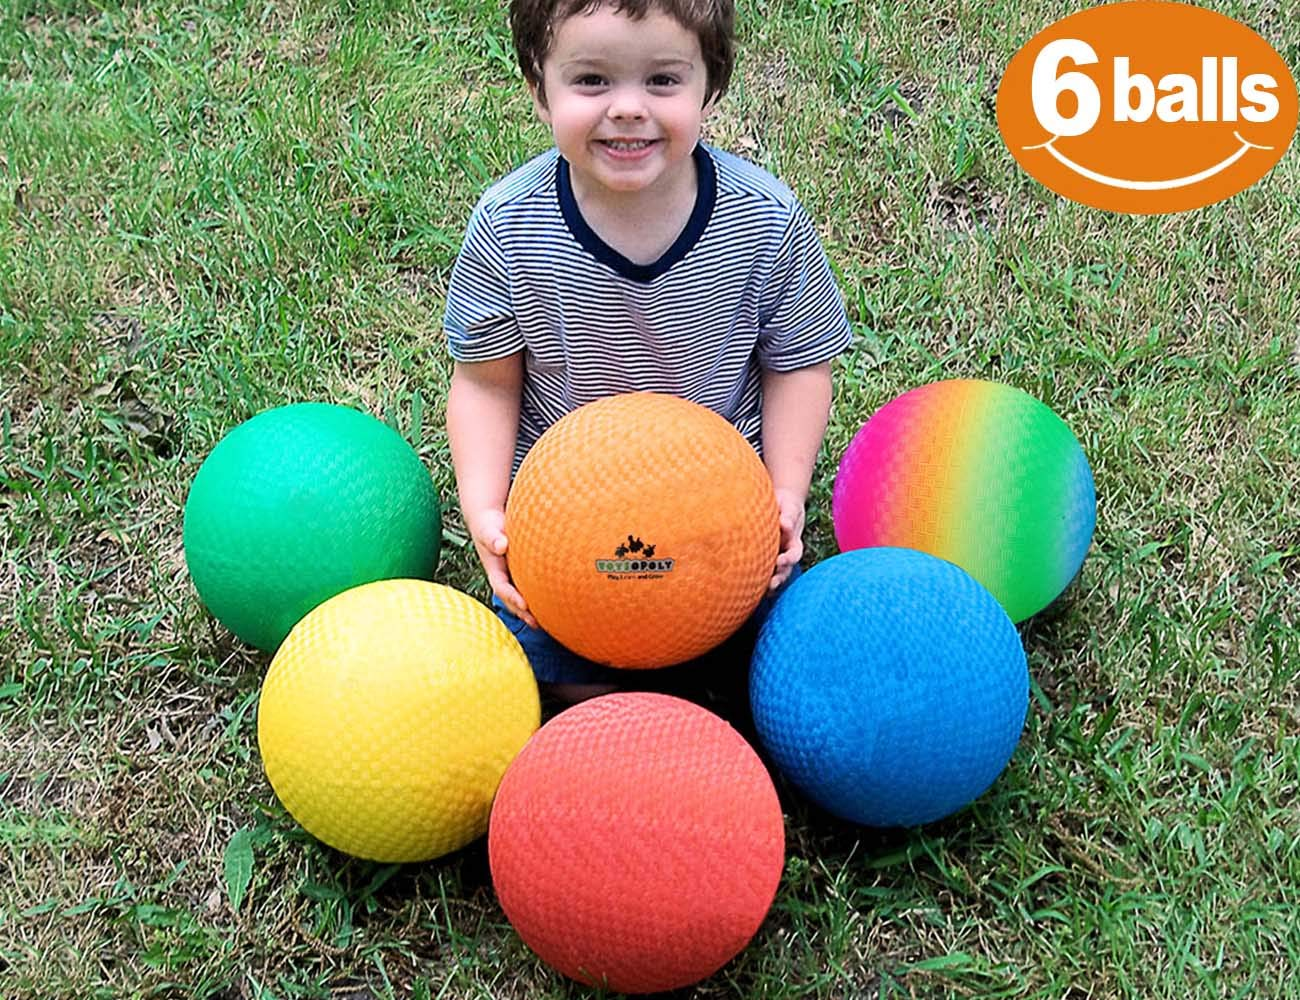 ToysOpoly Playground Balls 8.5 inch Dodgeball (Set of 6) Kickball for Kids and Adults - Official Size for Dodge Ball, Handball, Camps, Picnic, Church & School + Free Pump & Mesh Bag by ToysOpoly